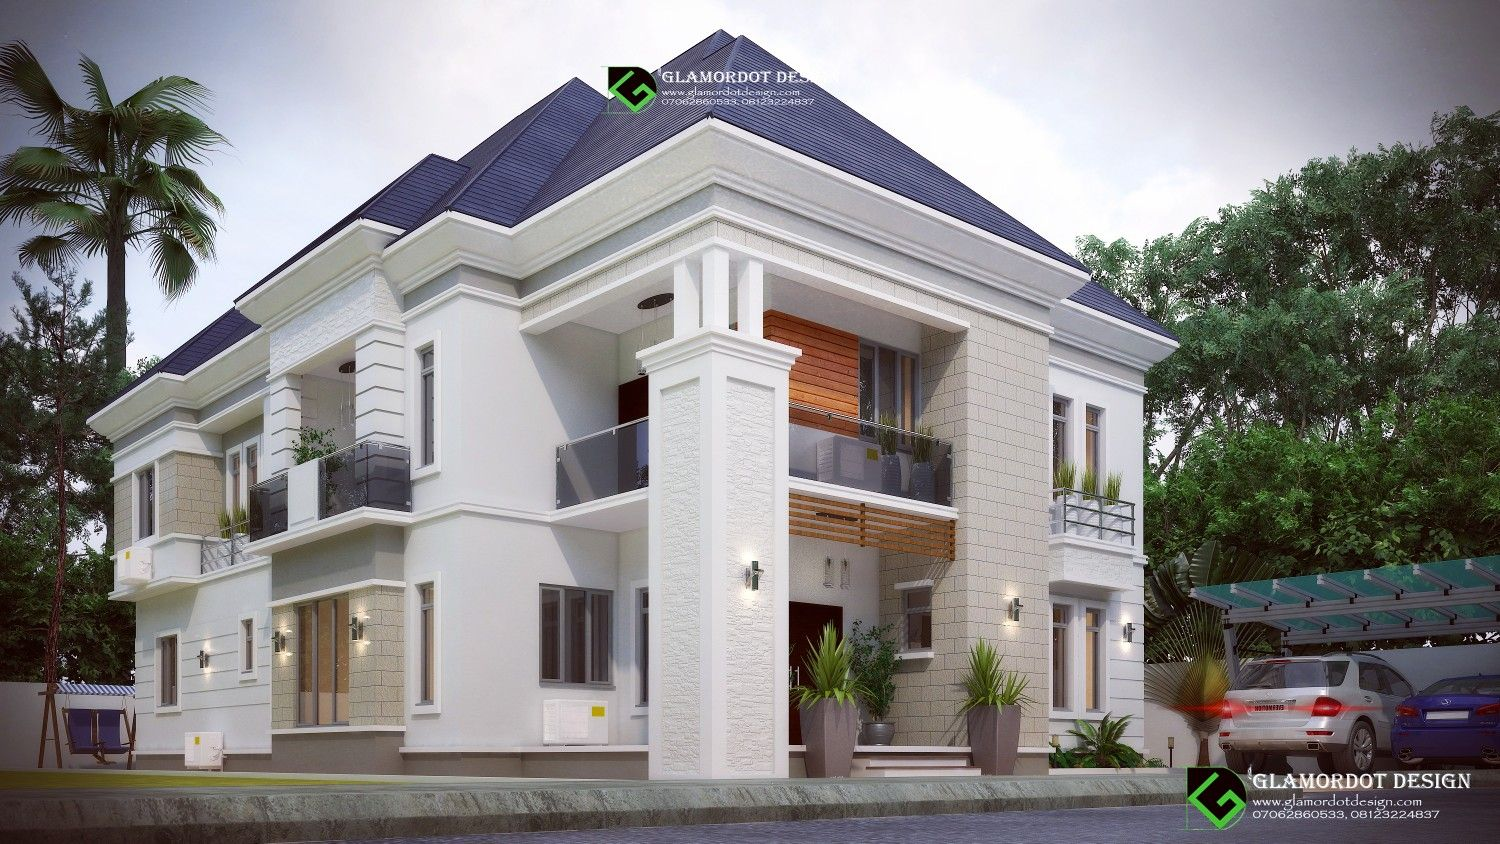 Architectural design of a proposed 7 bedroom duplex ...